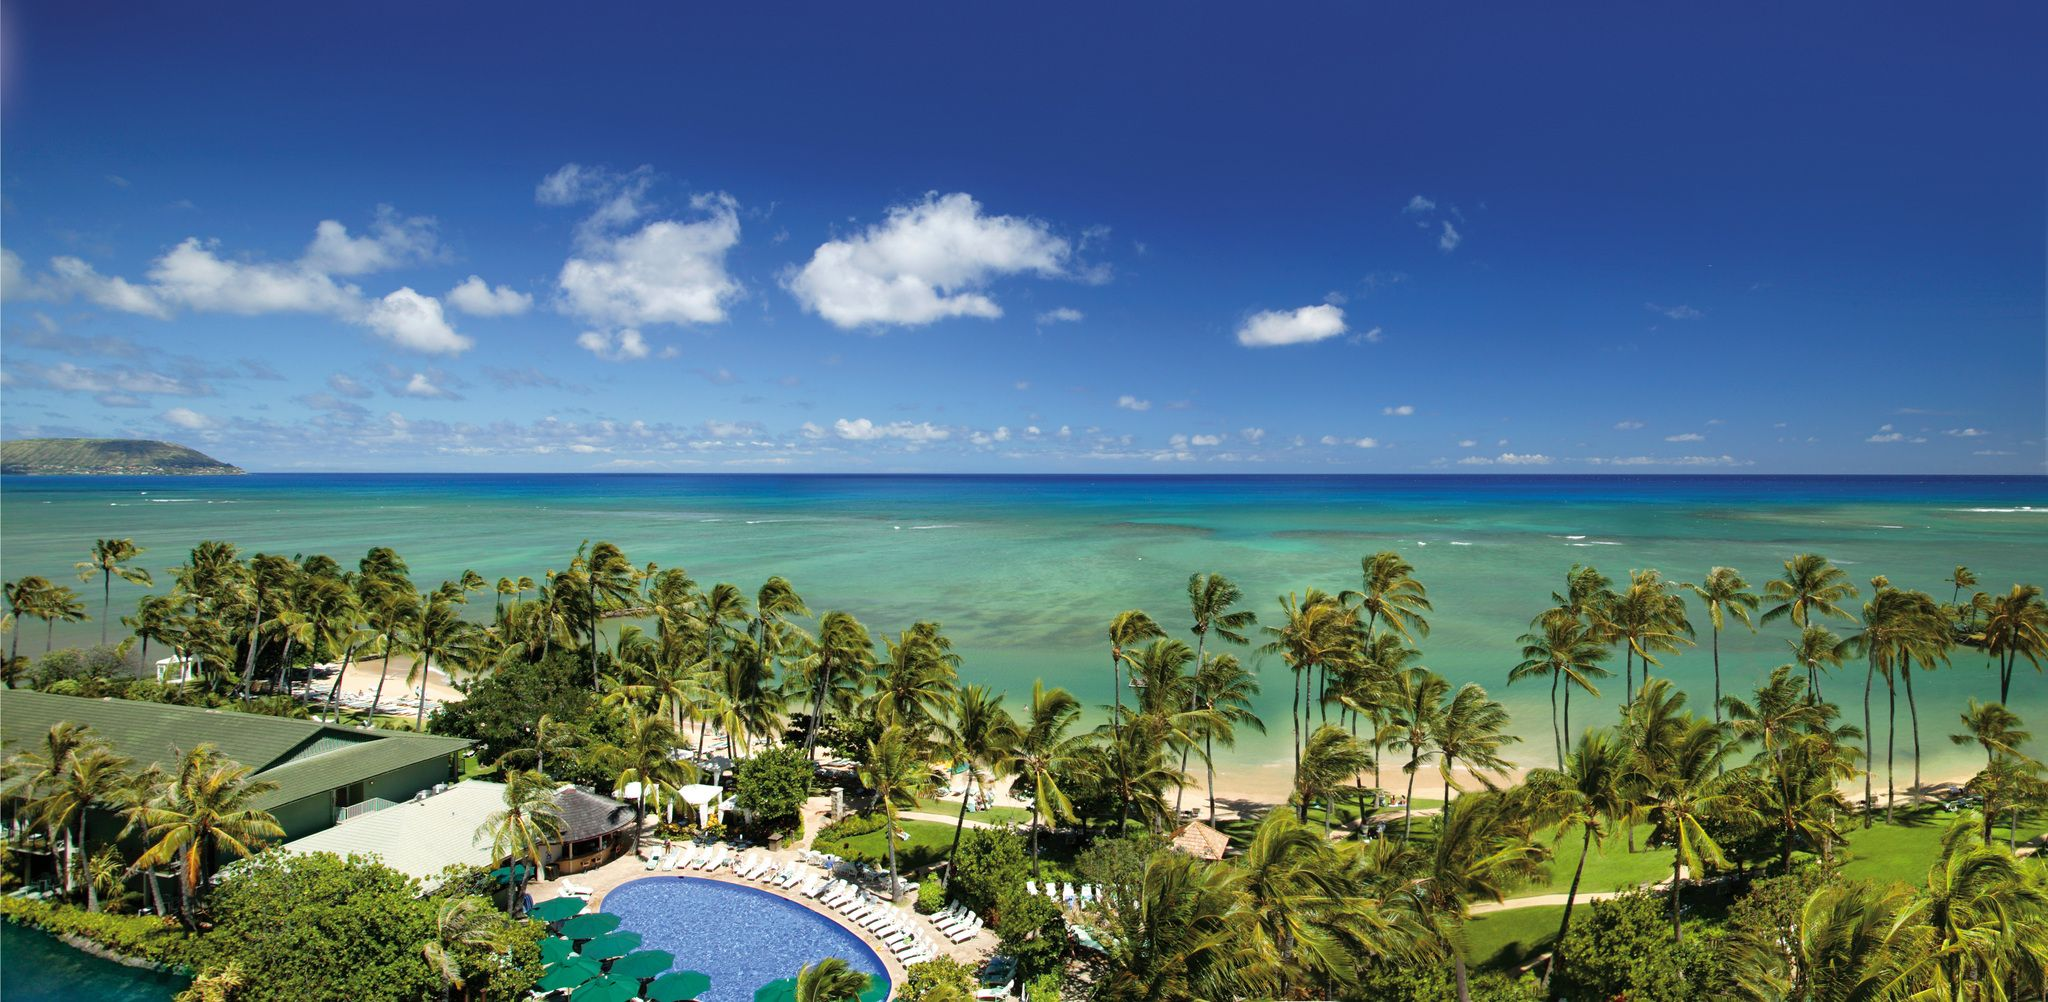 The Kahala Lodge  Resort on Design Locations is